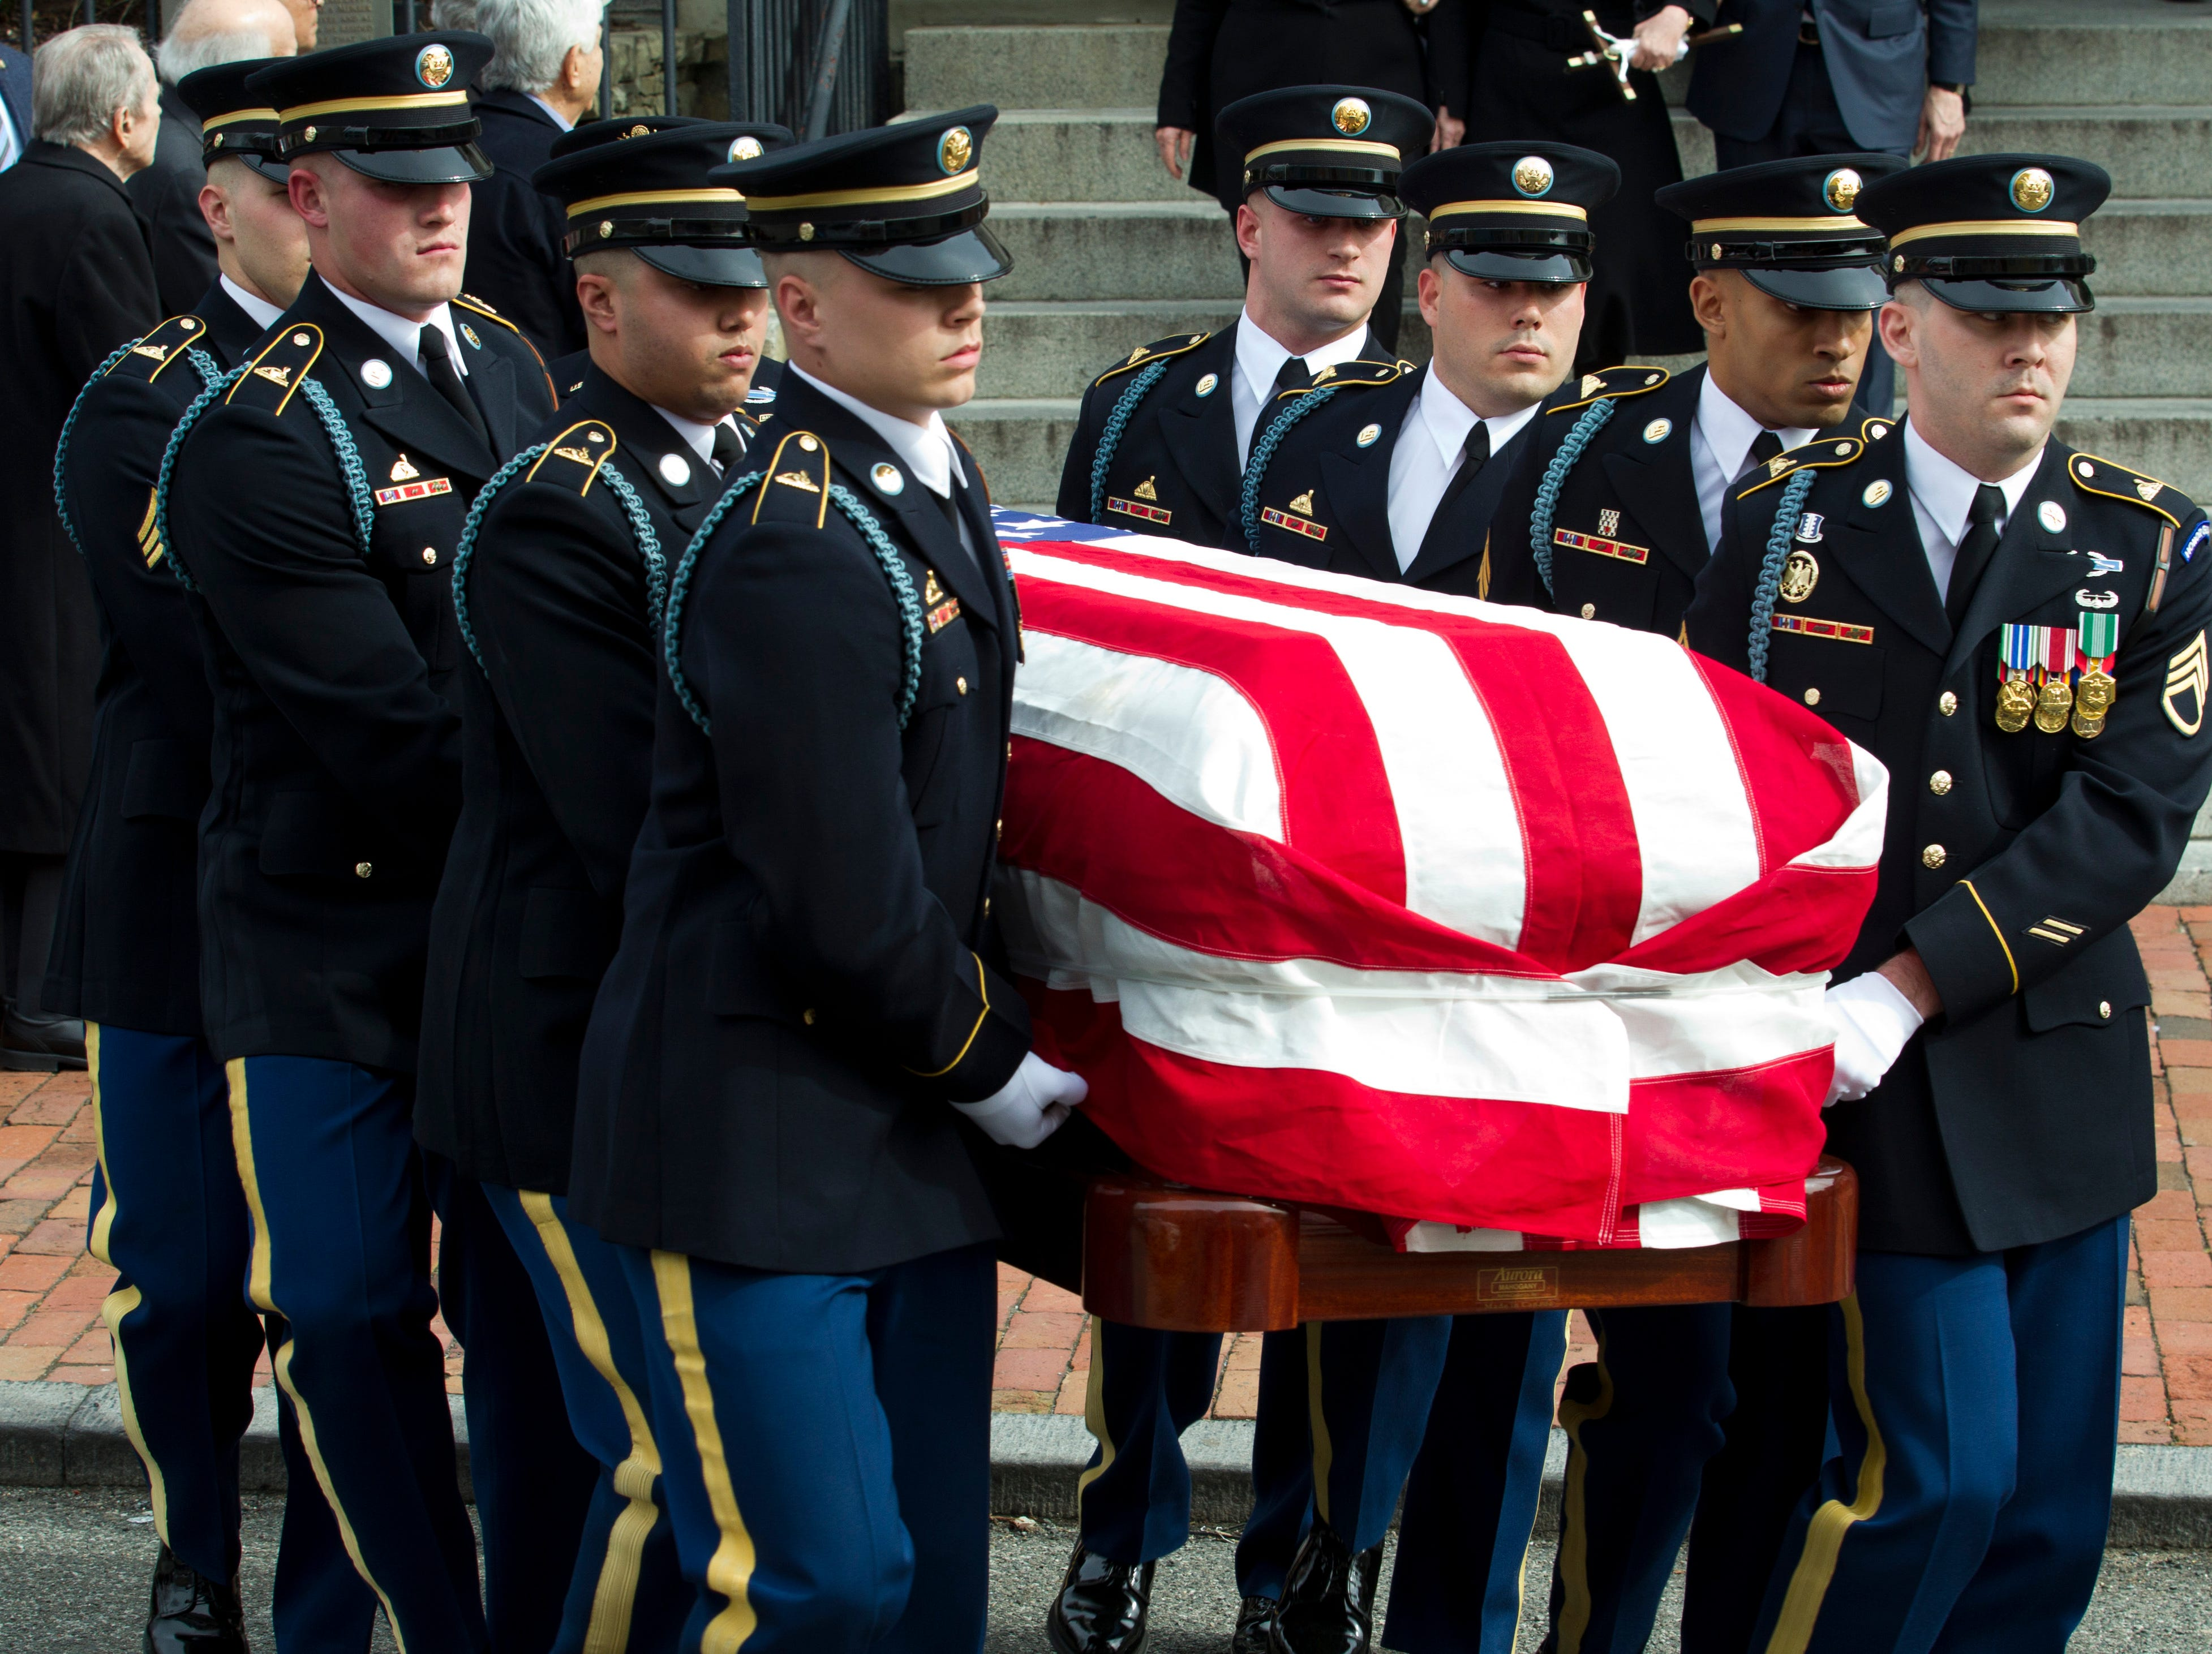 The flag-draped casket of former Rep. John Dingell departs the church after the funeral at Holy Trinity Catholic Church, Thursday, Feb. 14, 2019, in Washington.